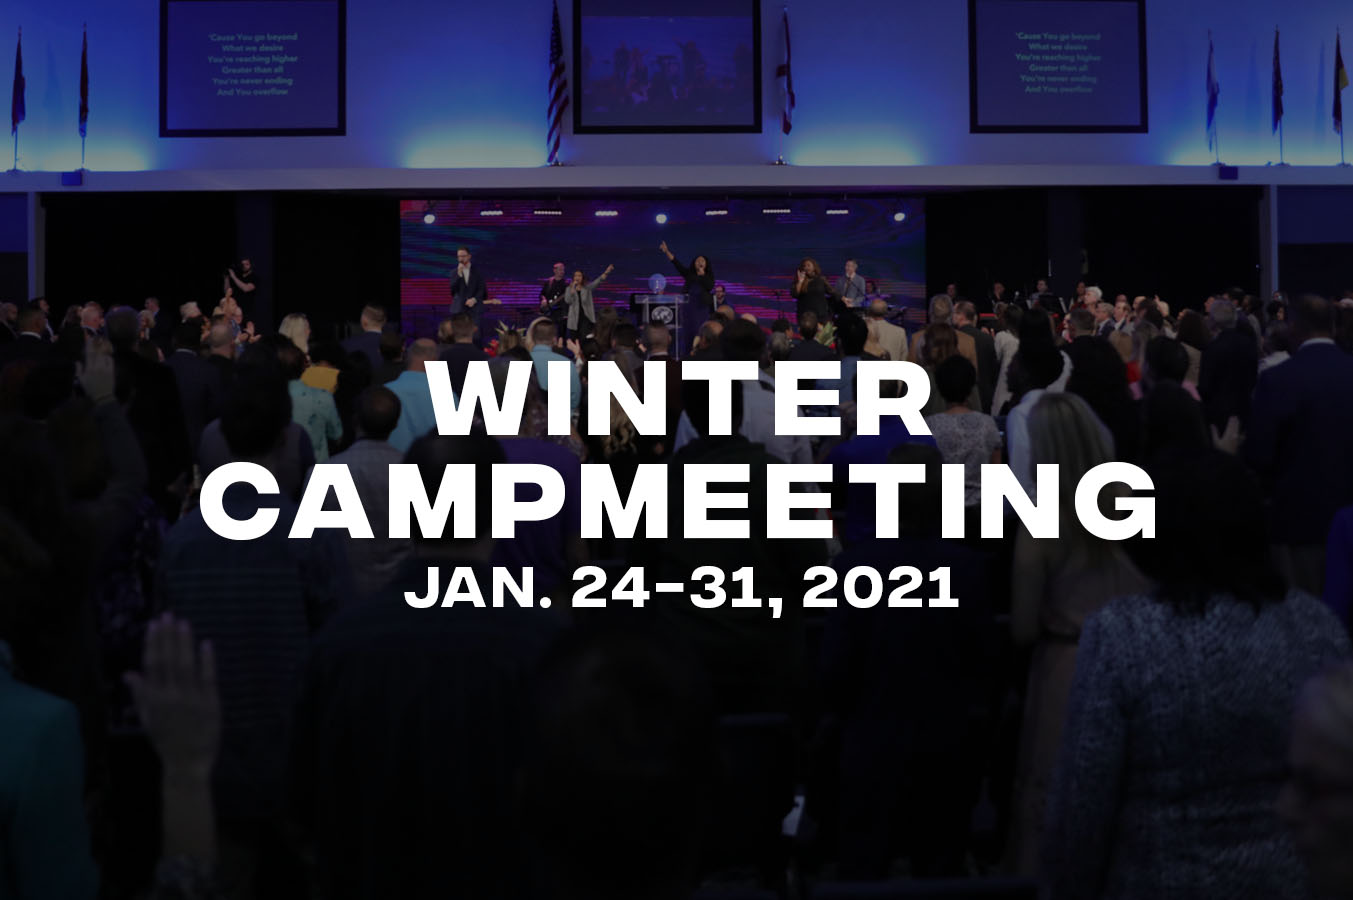 Winter Campmeeting 2021